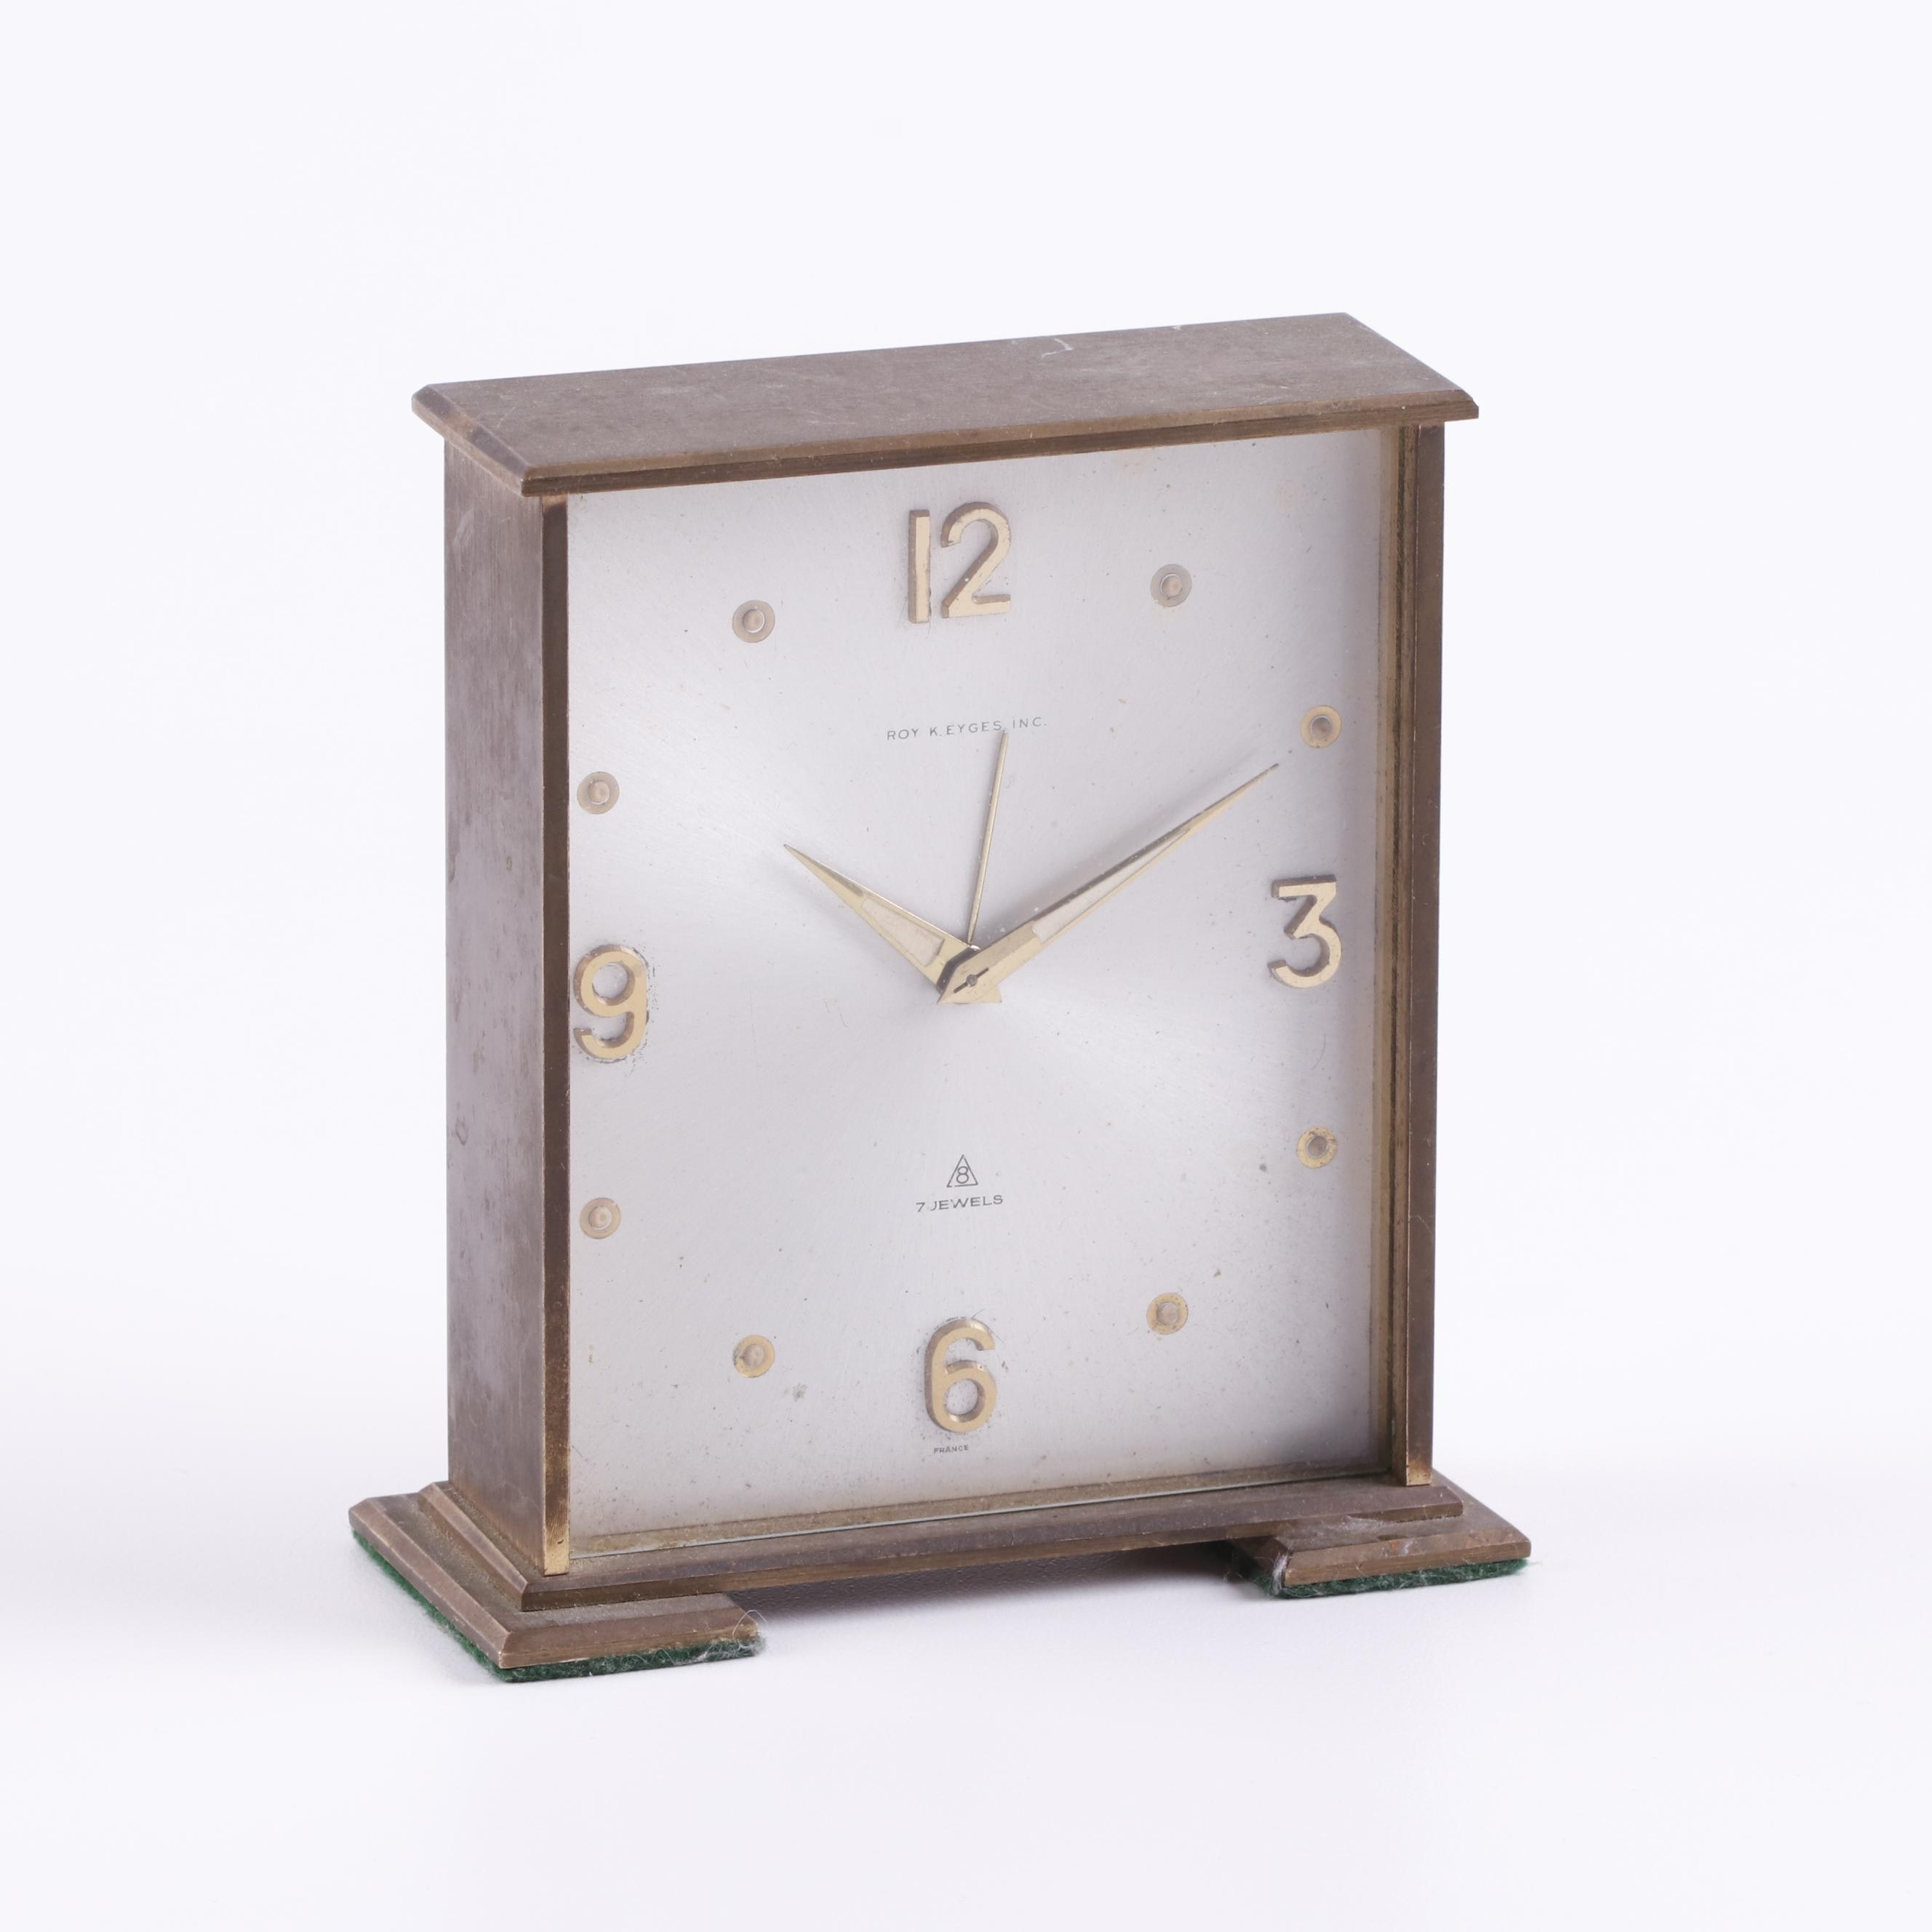 French Roy K. Eyges Brass Desk Clock